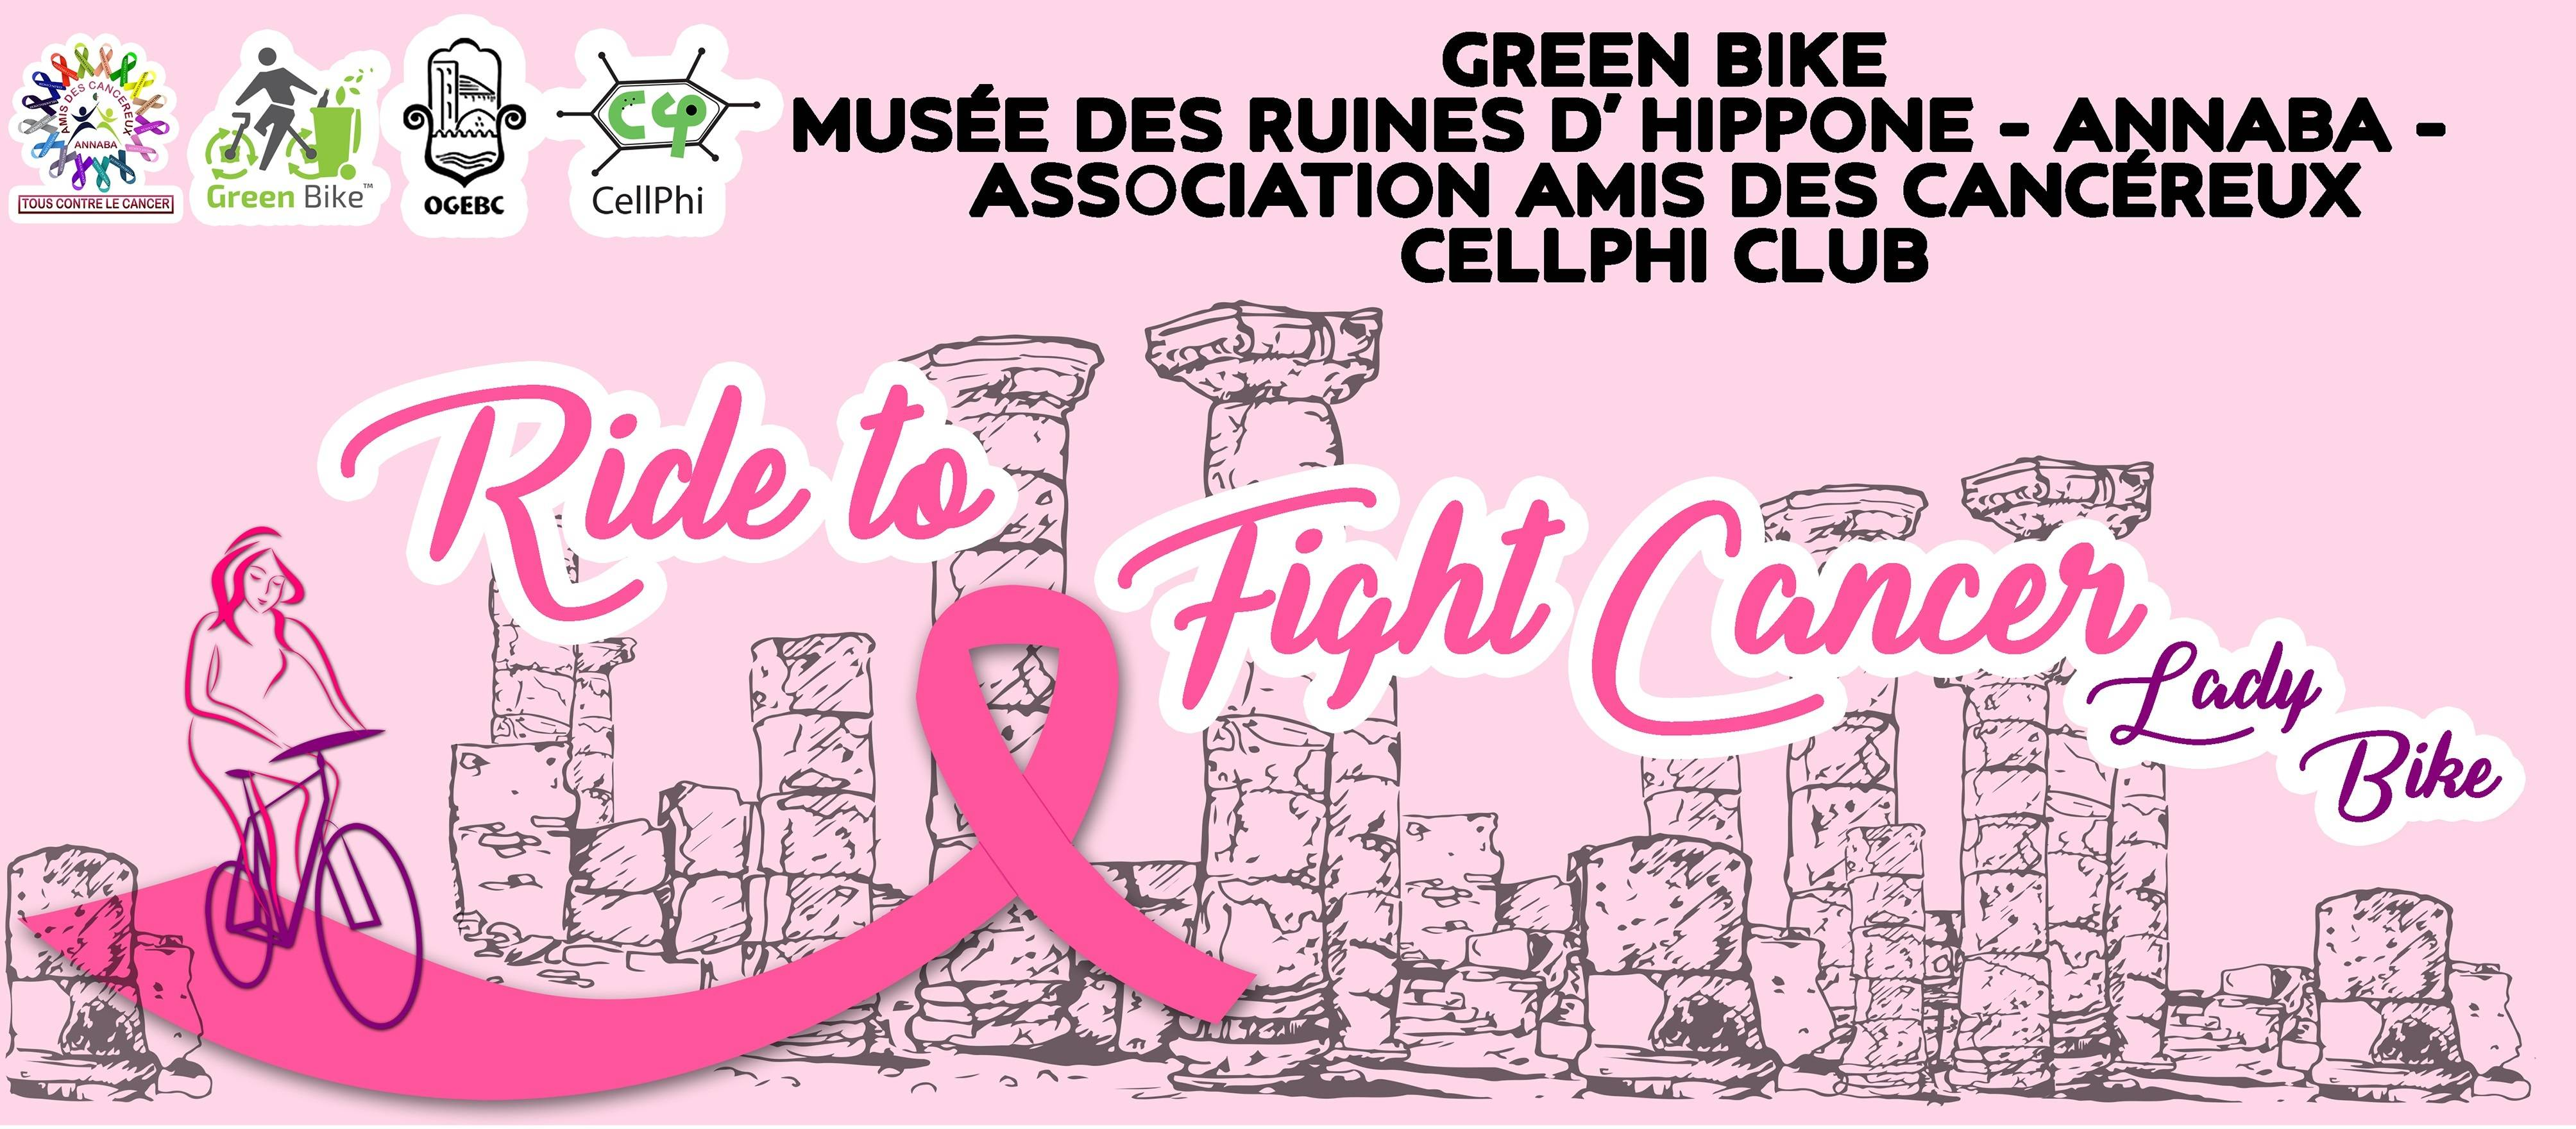 Ride to fight the cancer - Association amis des cancéreux Annaba